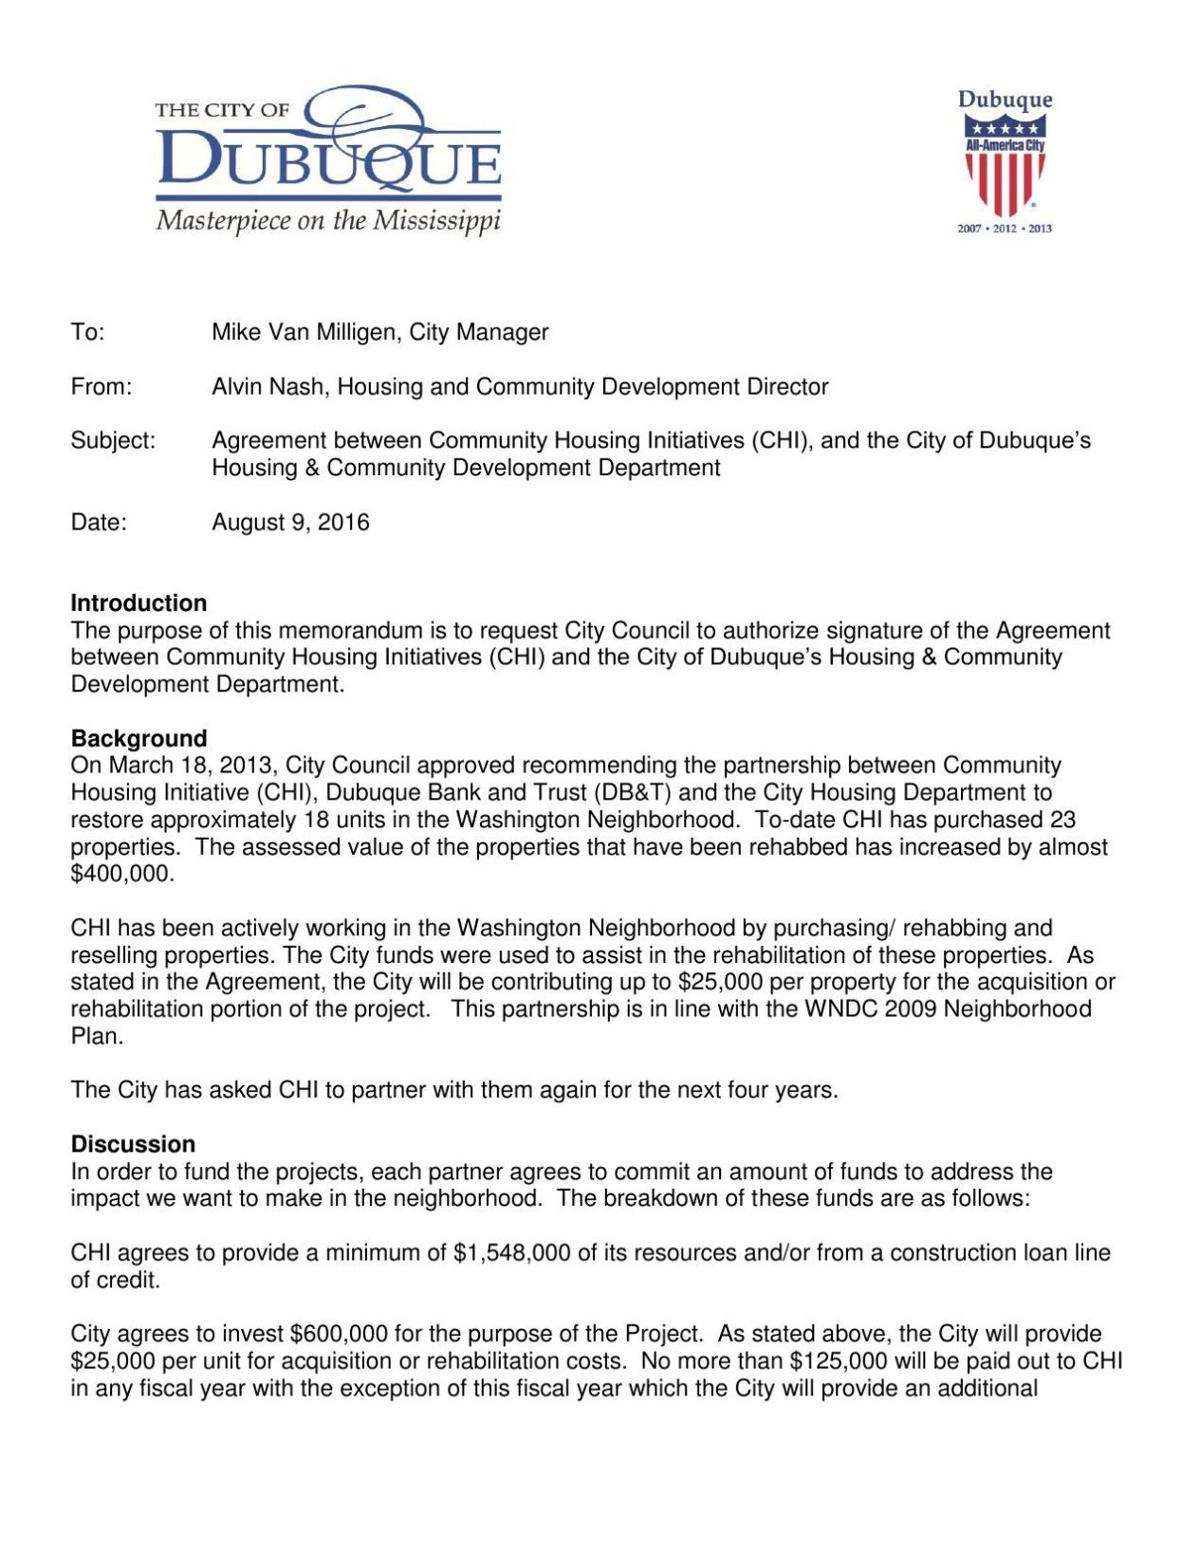 City Memo Agreement With Chi Tri State News Telegraphherald